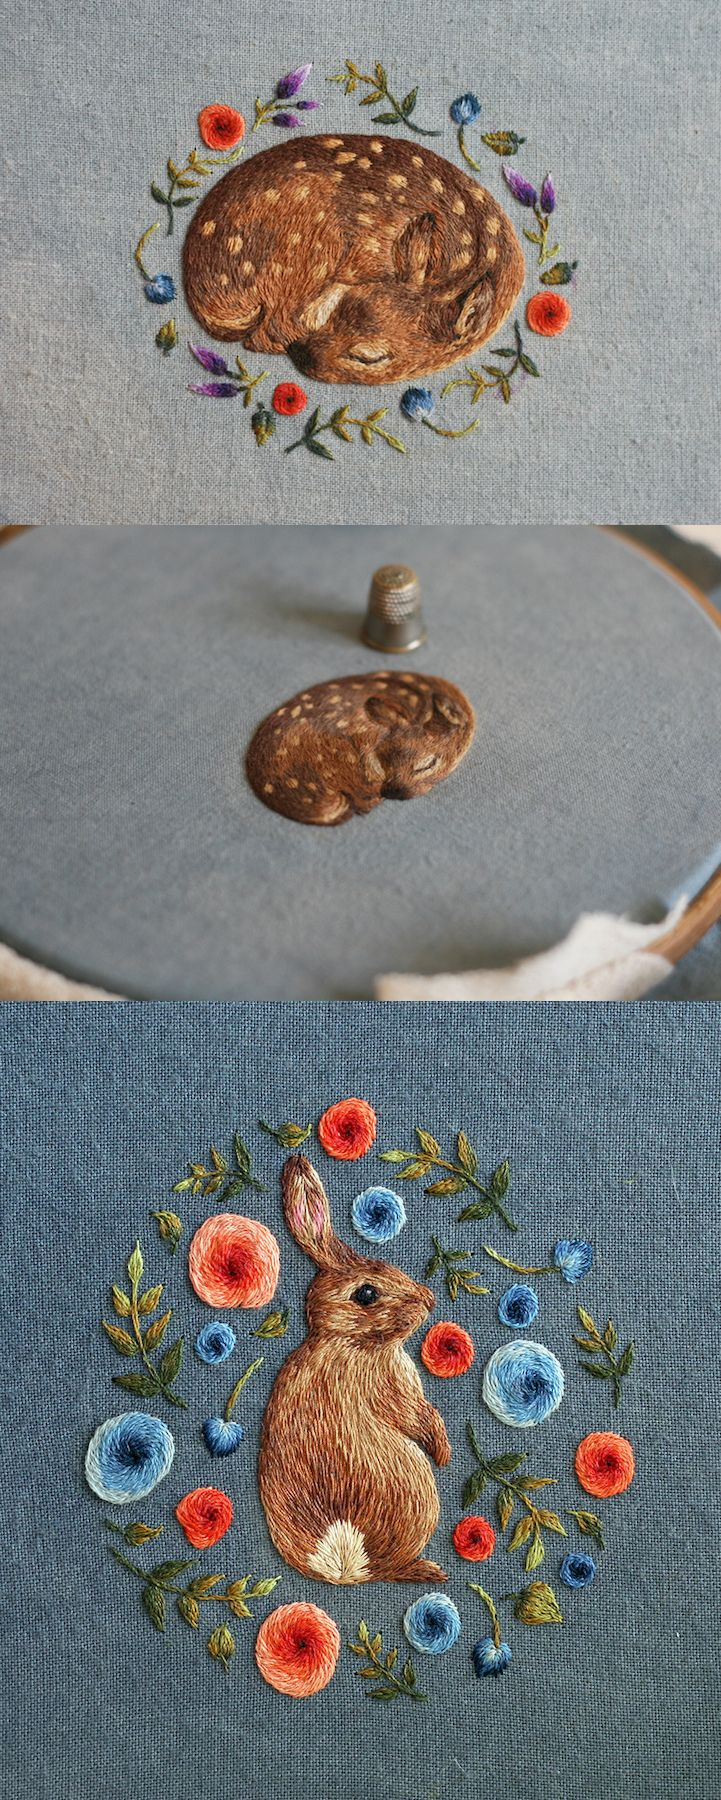 Meticulously-Stitched Embroideries Sculpt Fuzzy Woodland Creatures with Thread